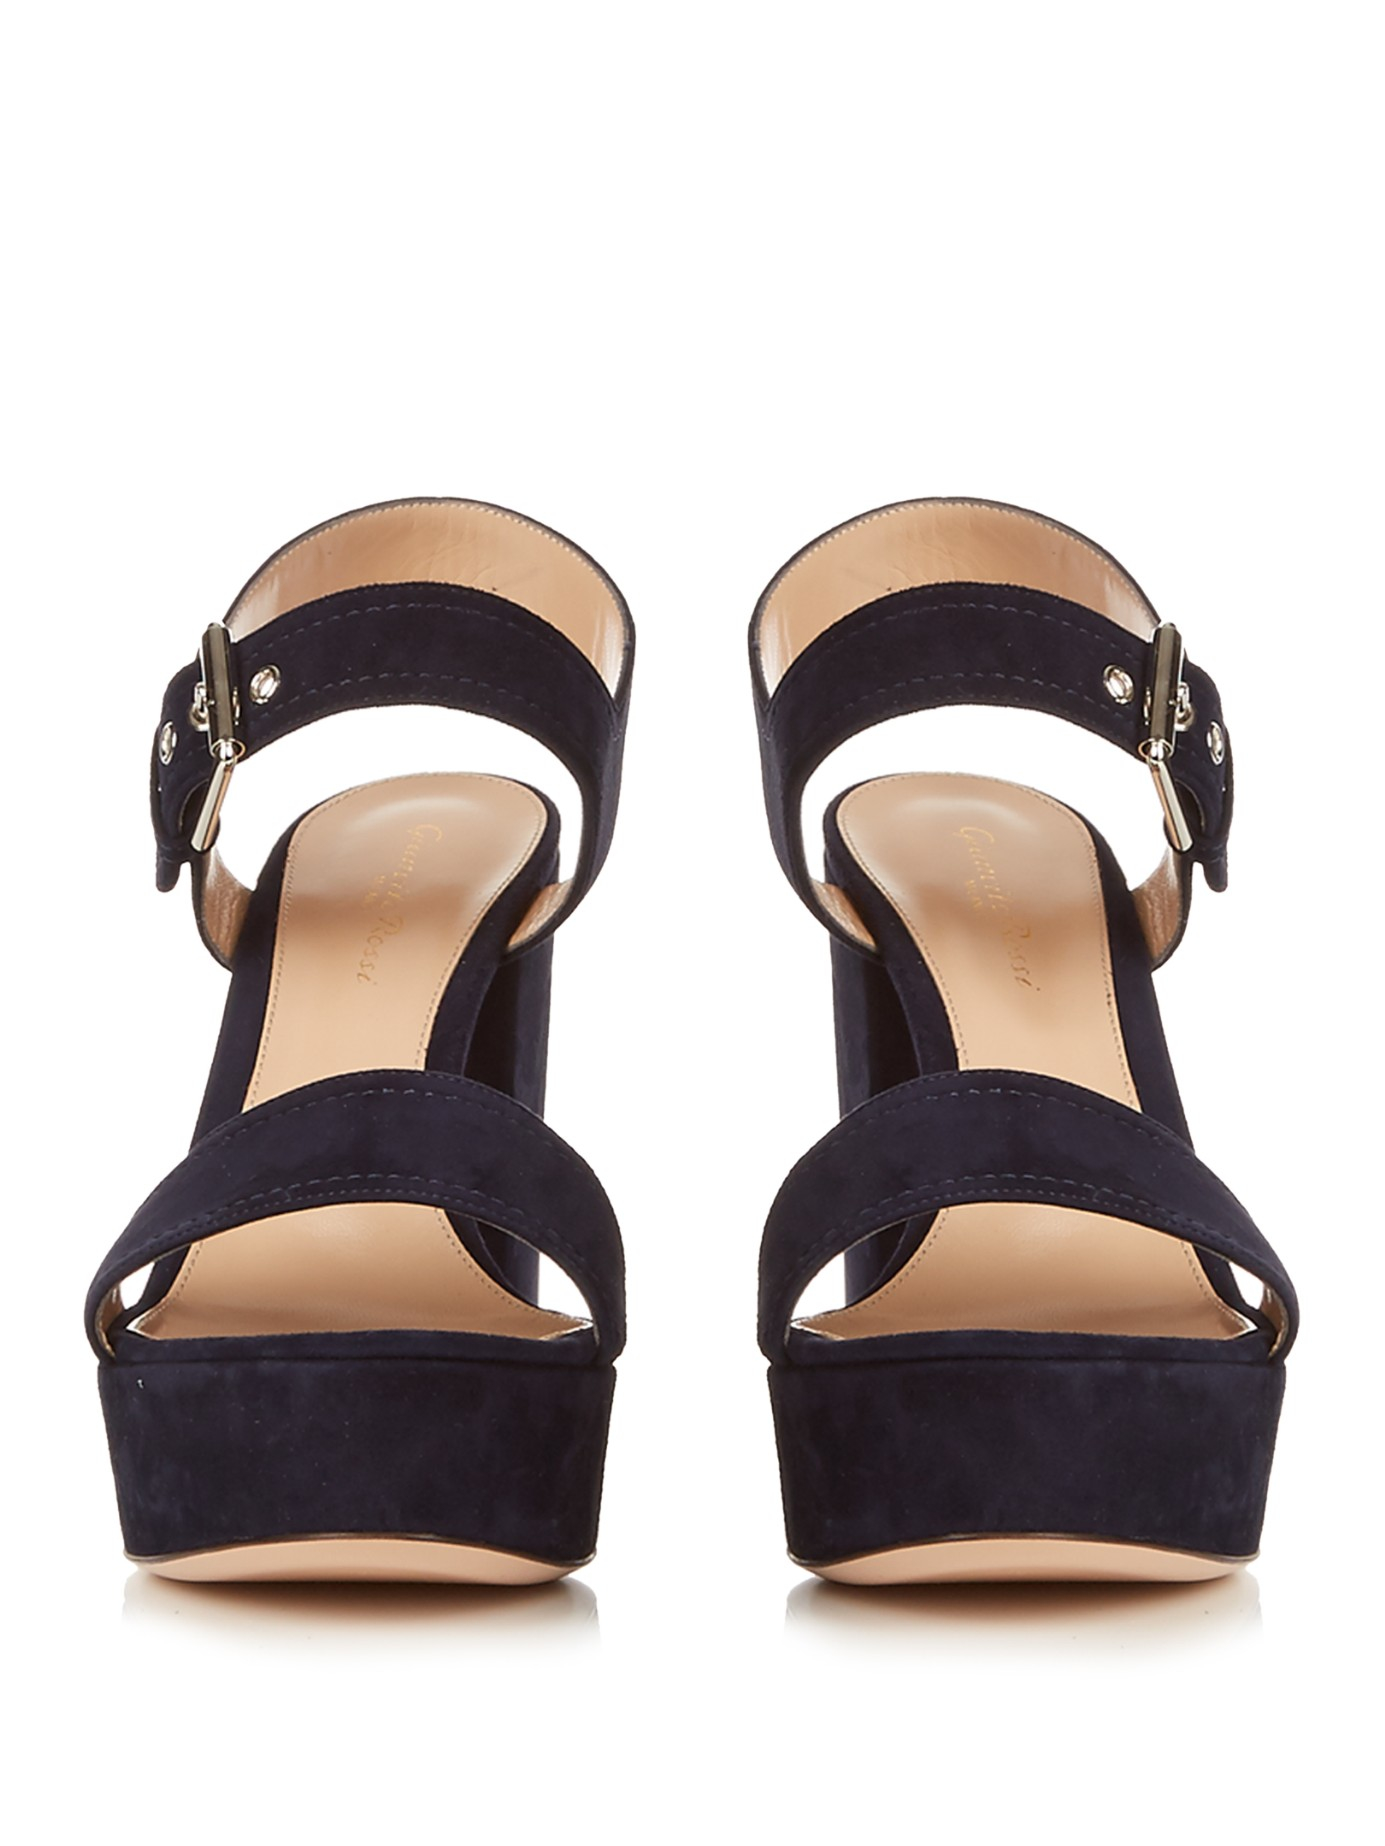 Lyst Gianvito Rossi Gina Suede Sandals In Black